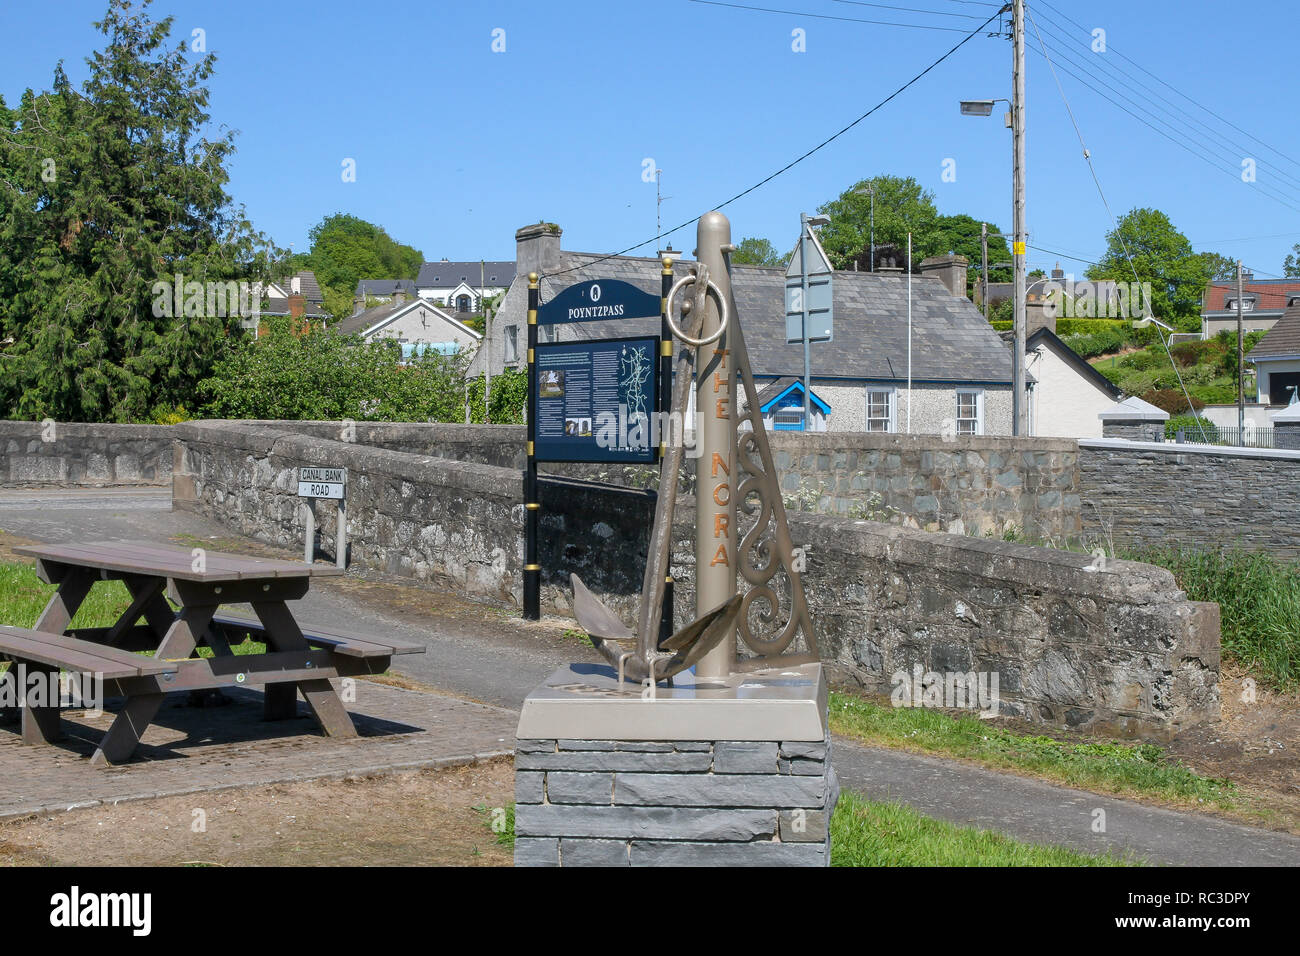 Information board and picnic area at Poyntzpass, County Down, Northern Ireland, alongside the Newry Canal. - Stock Image